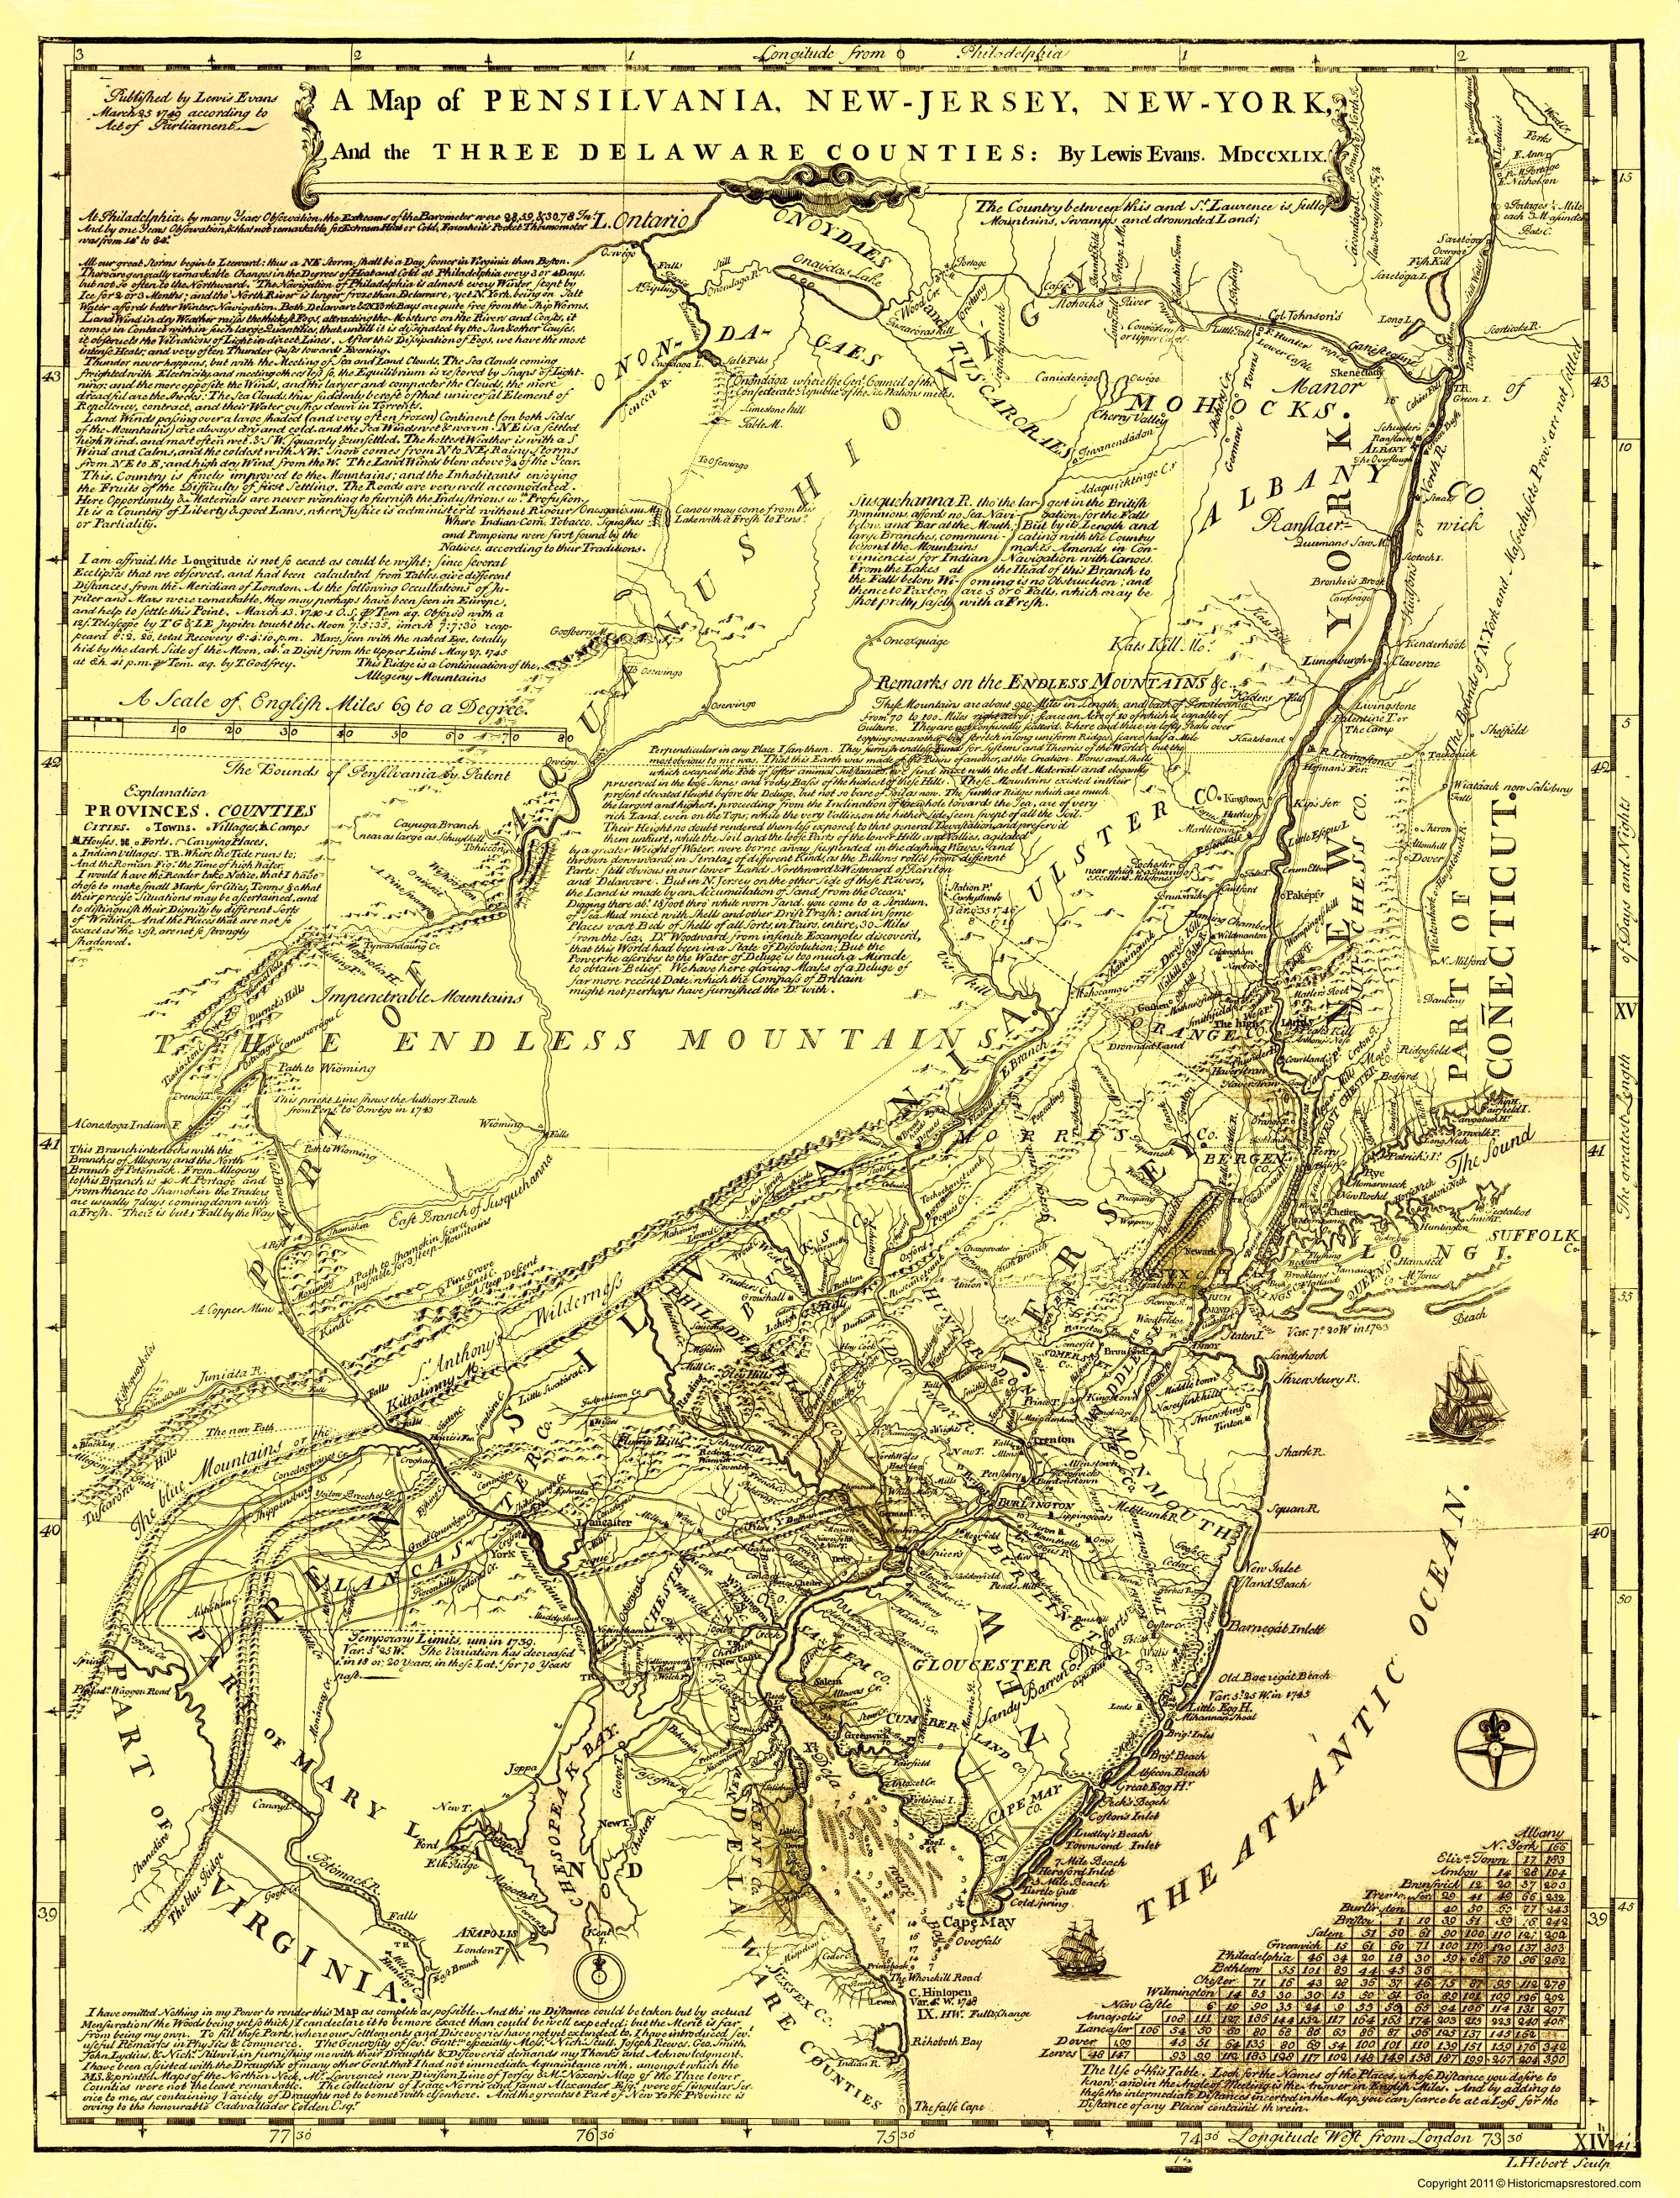 Old War Map - Pennsylvania and the 3 Delaware Counties Delaware Counties Map on